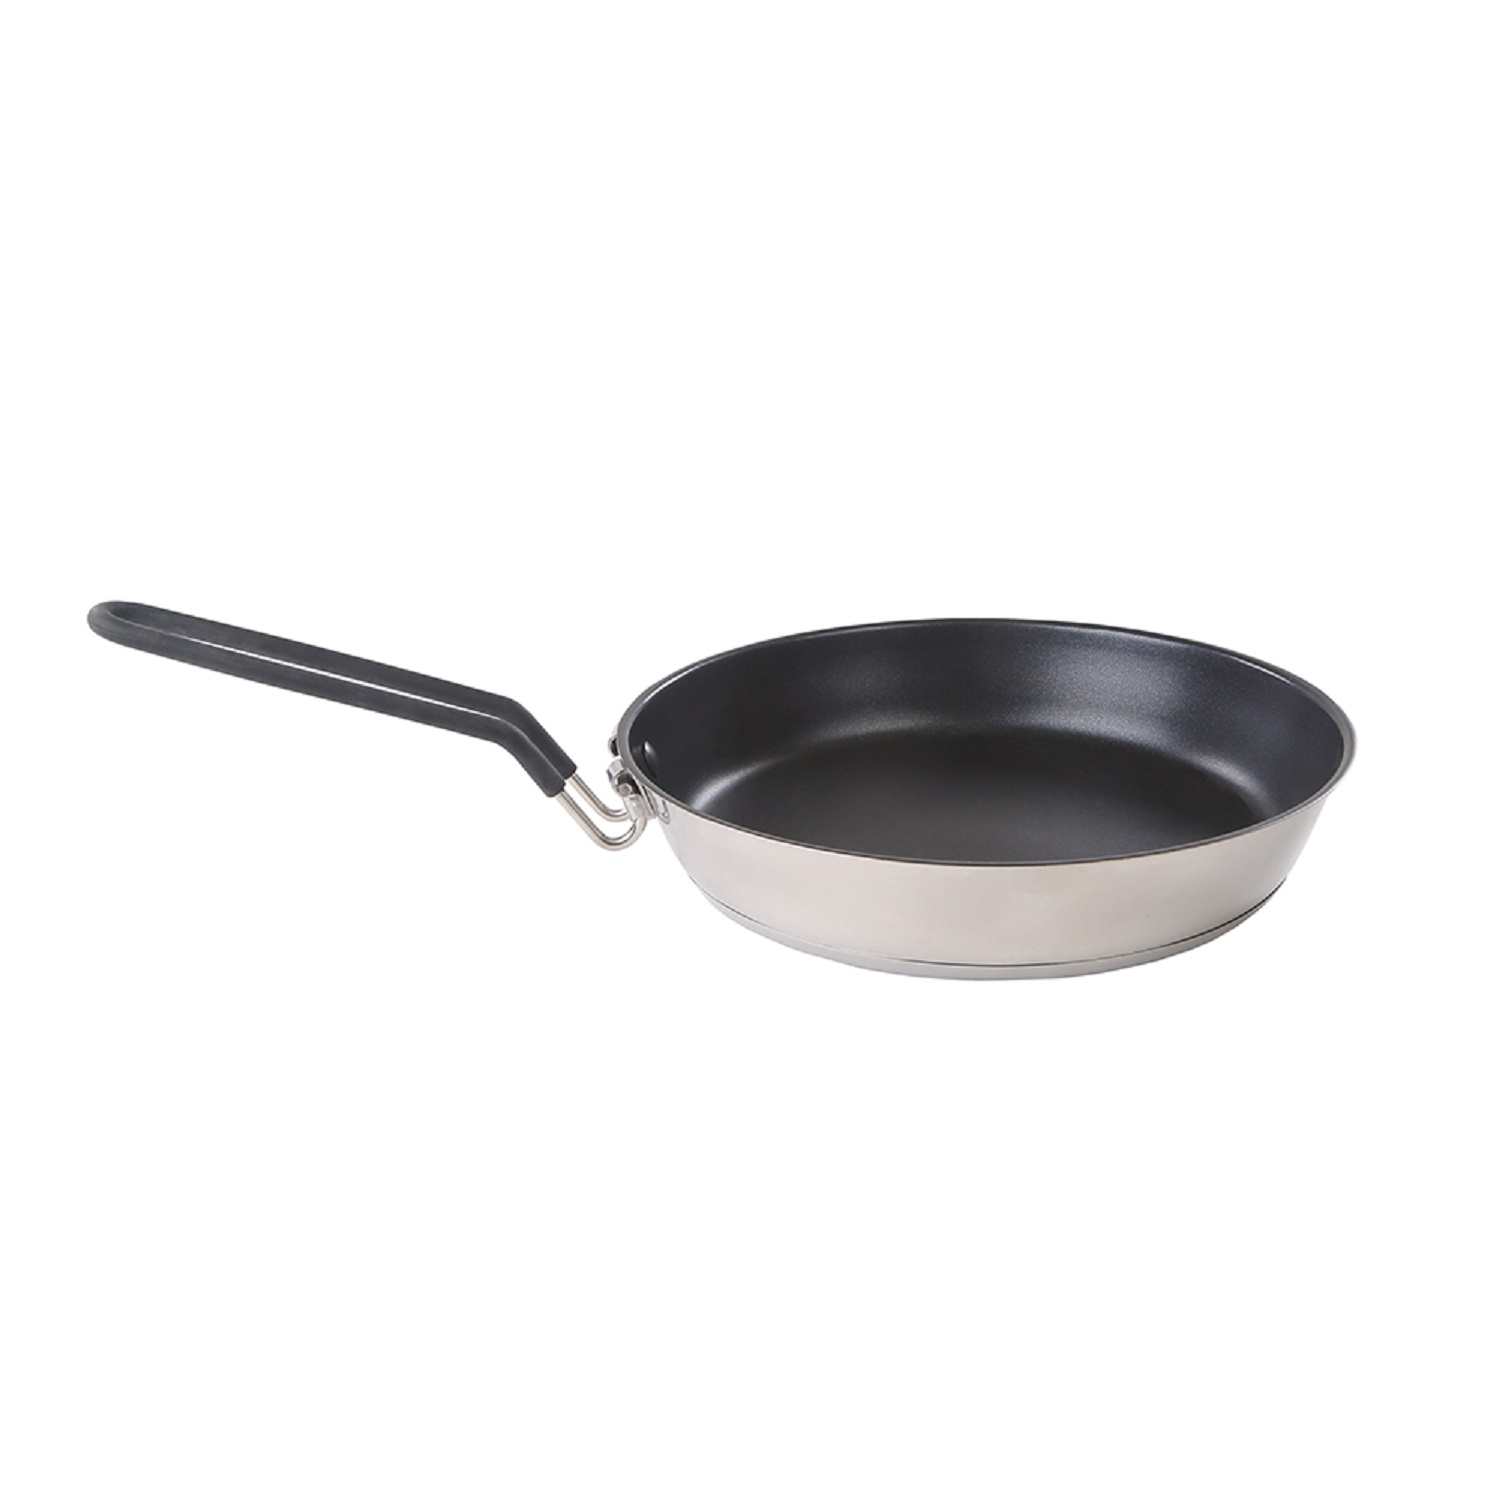 """Stansport Stainless Non-Stick Coated Fry Pan with Folding Handle-10"""" by Stansport"""